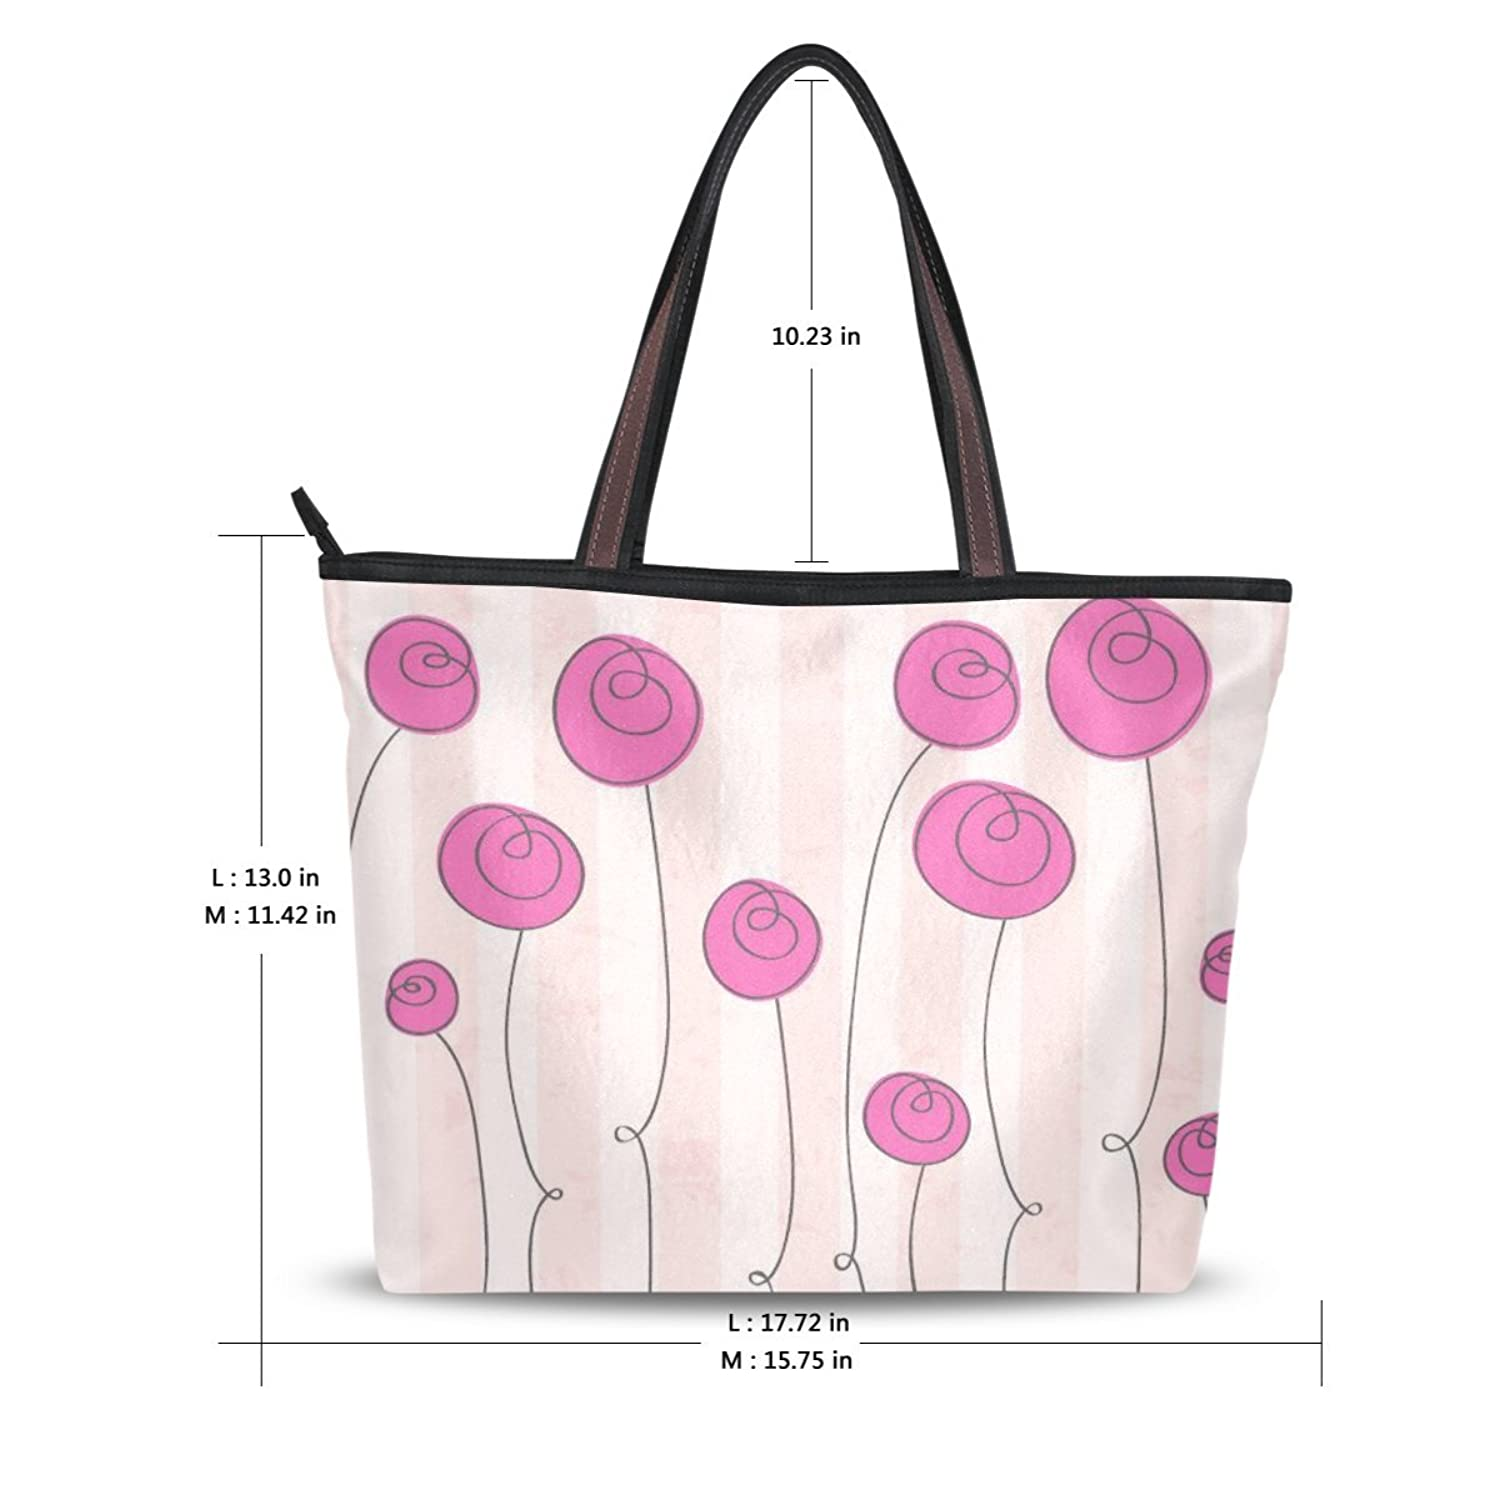 Women's New Fashion Design White Handbag Pink Flower Pattern Shoulder Bags Personalized Tote Bags